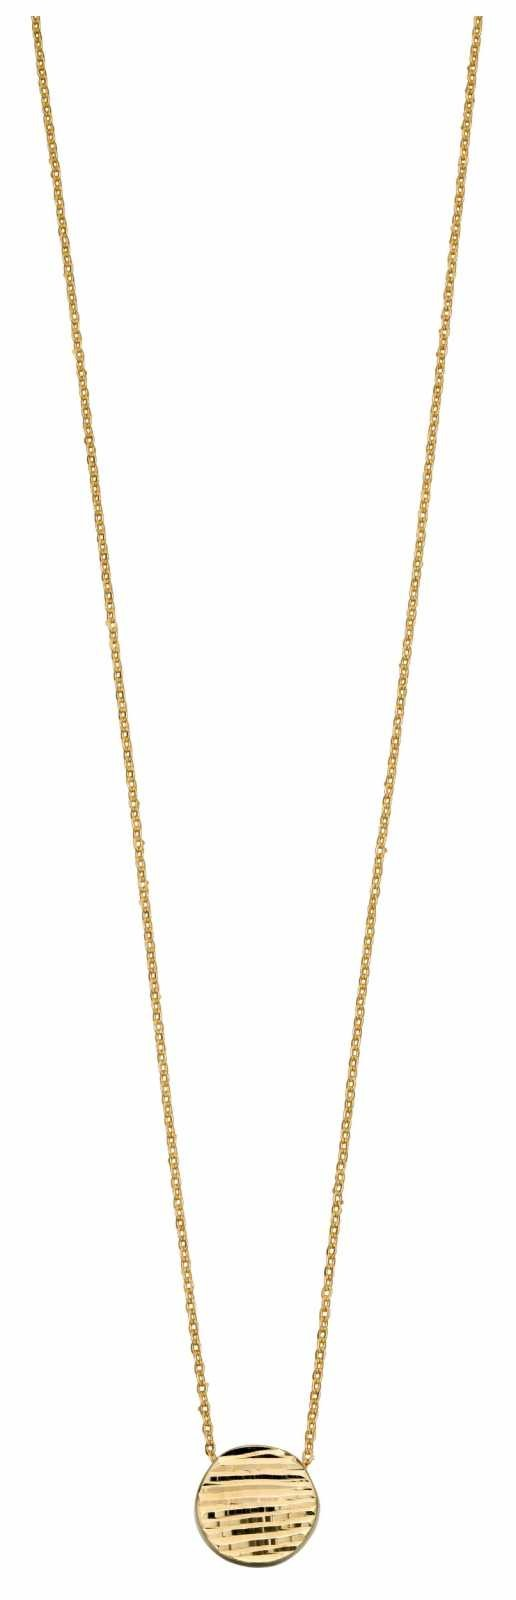 Elements Gold 9k Yellow Gold Textured Circle Necklace GN329